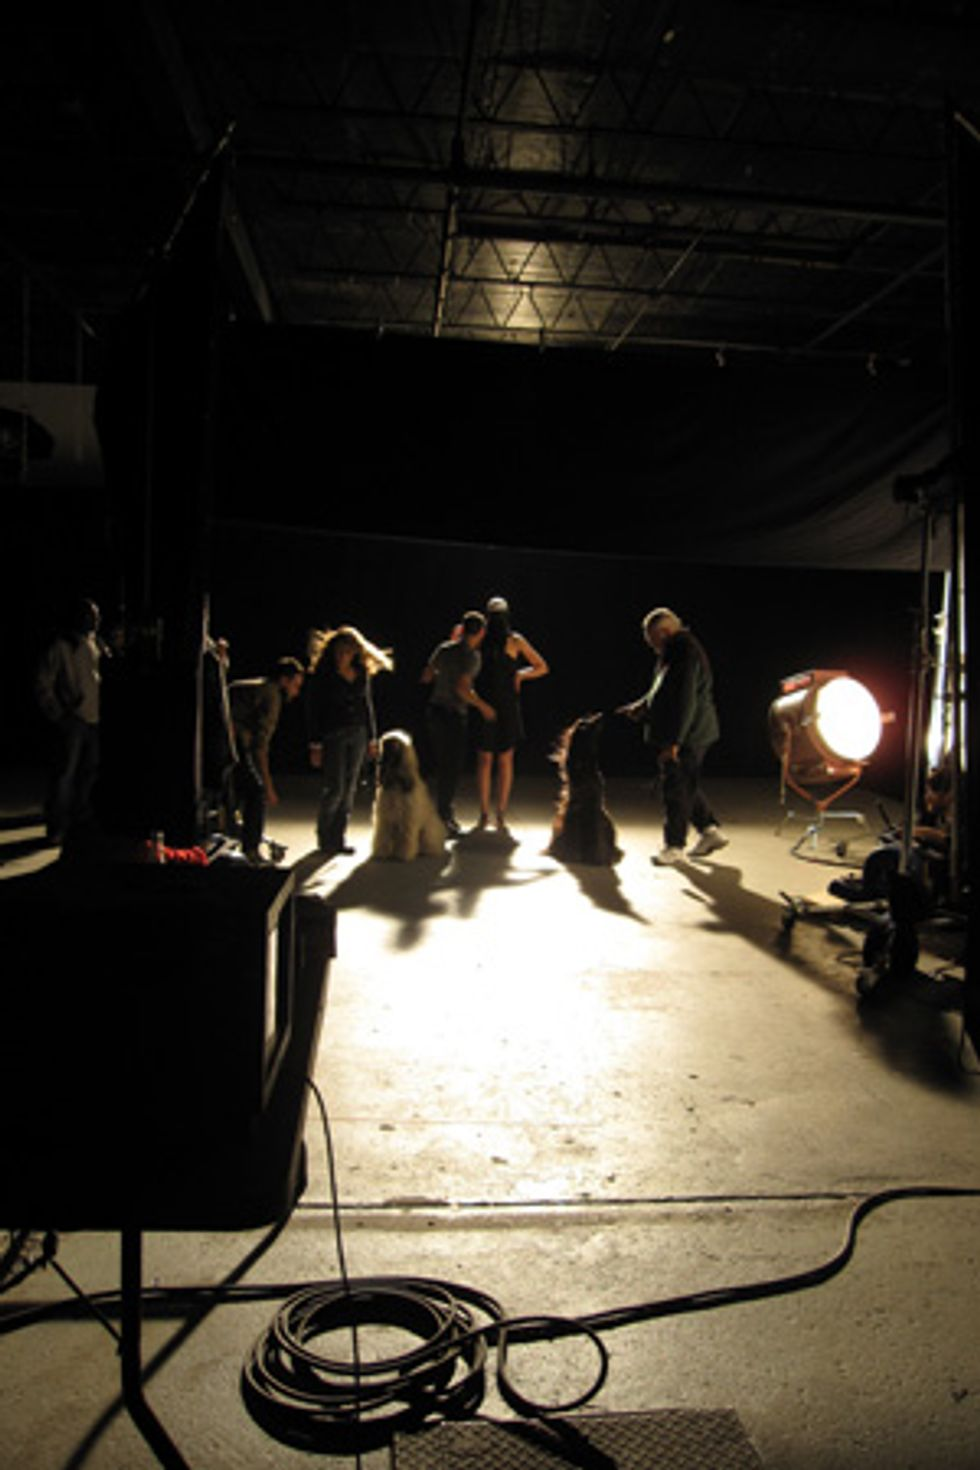 Scenes From the Fires of Rome Music Video Shoot